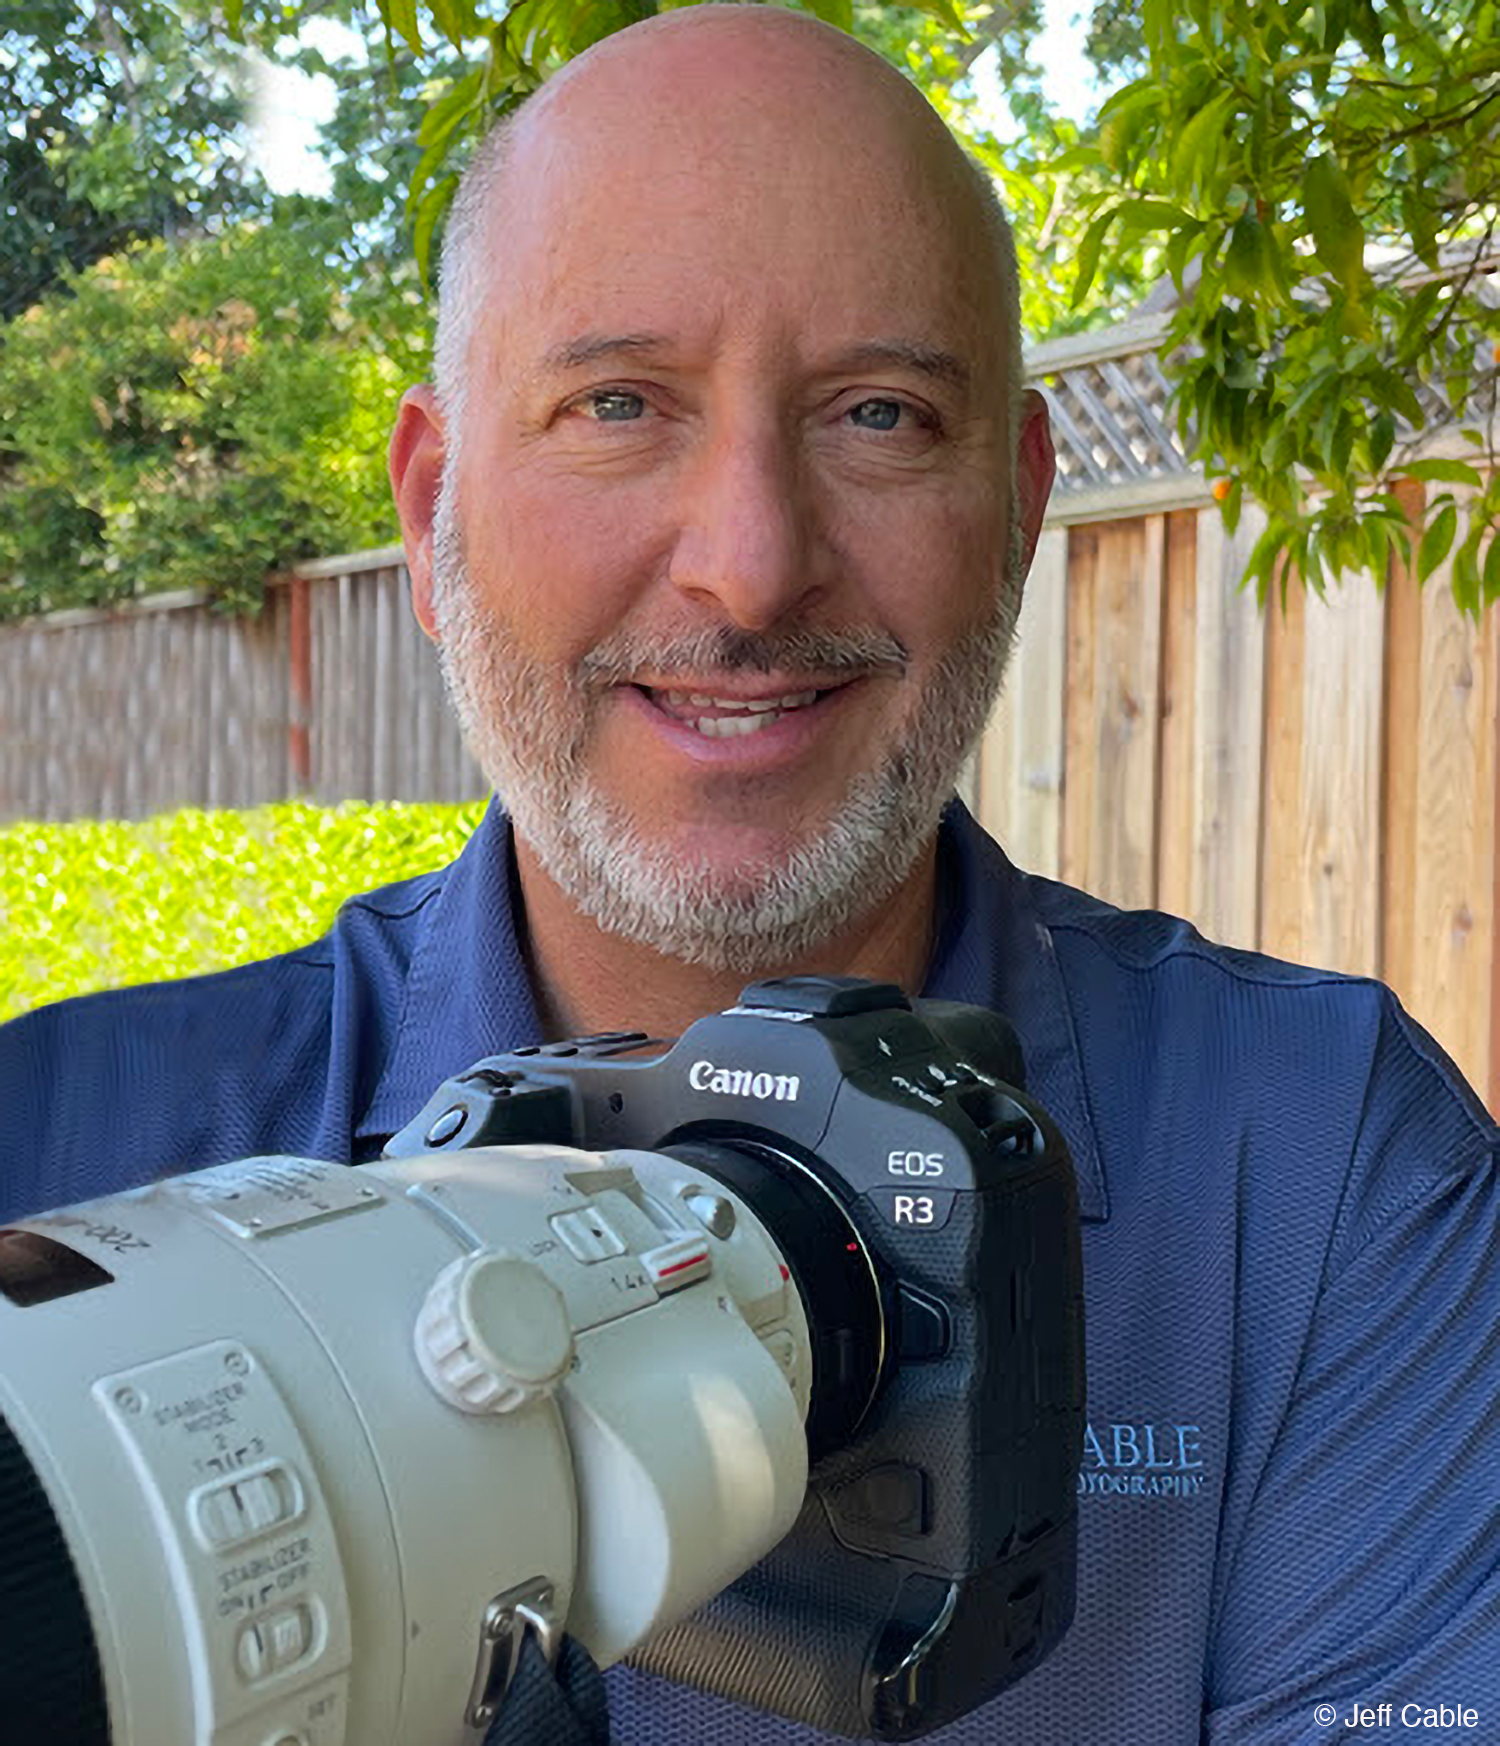 Photo of Canon R3 with Jeff Cable